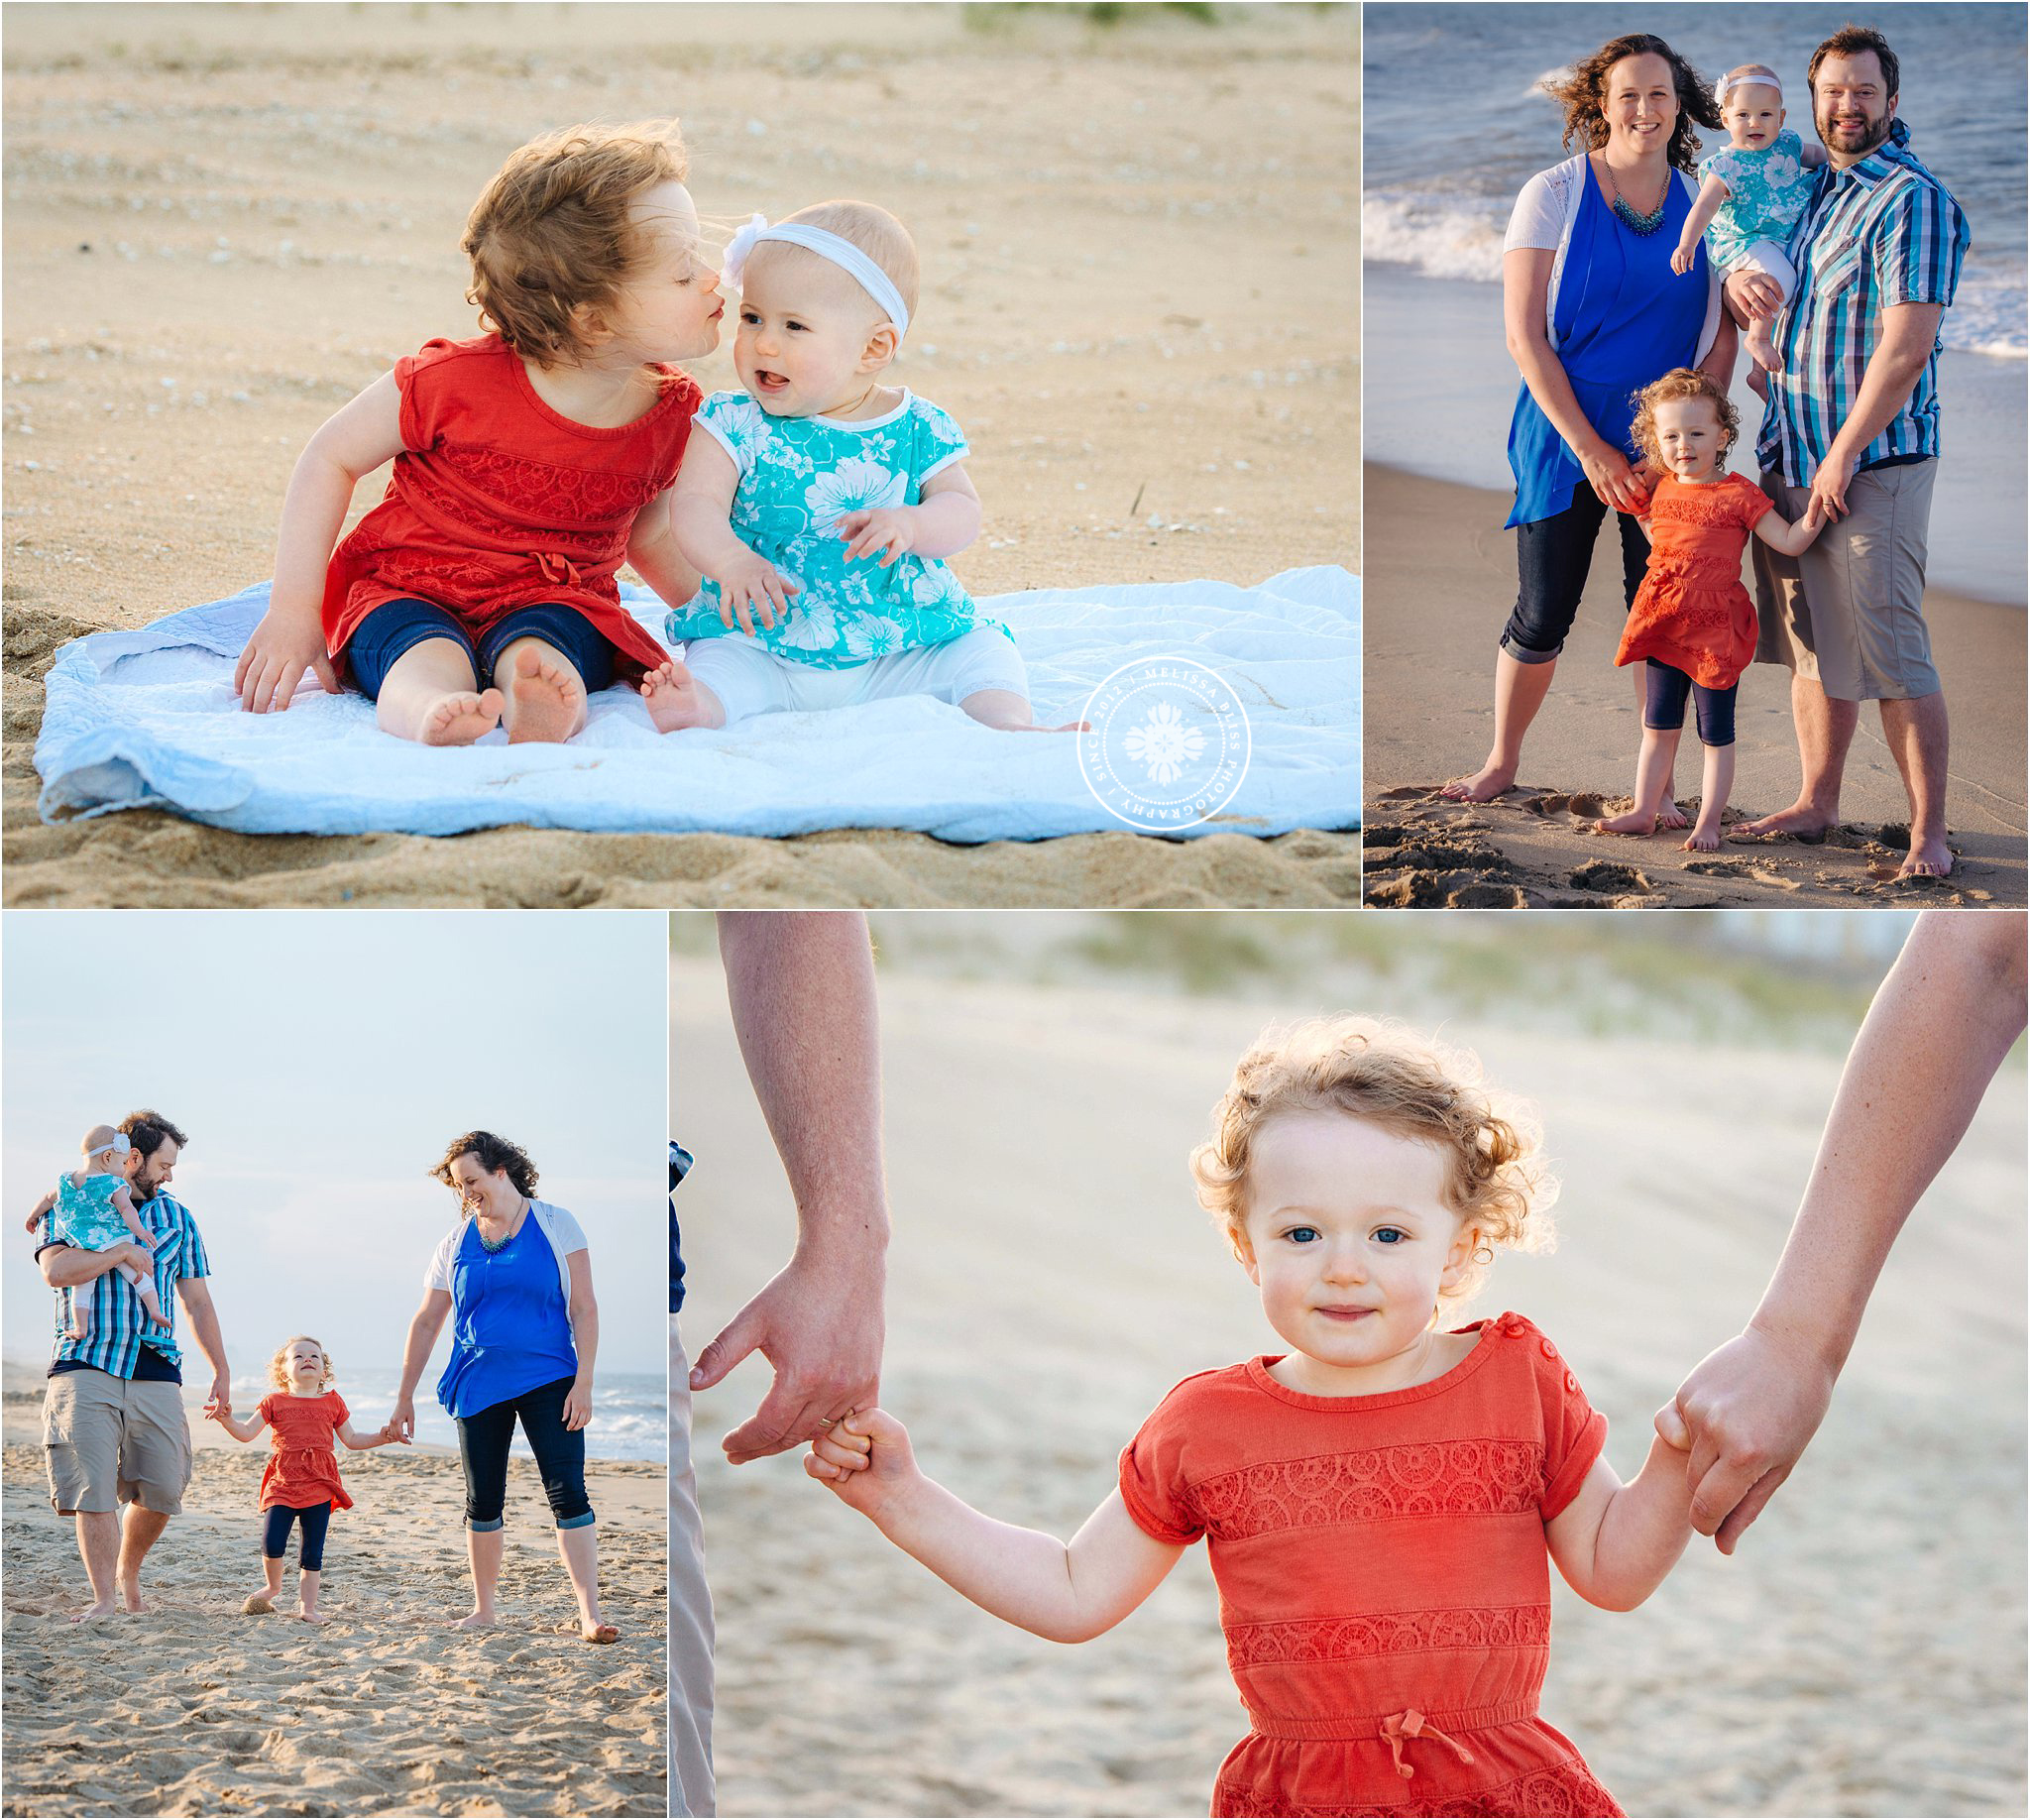 virginia-beach-photographer-family-beach-photo-session-at-sandbridge-beach-va-melissa-bliss-photography